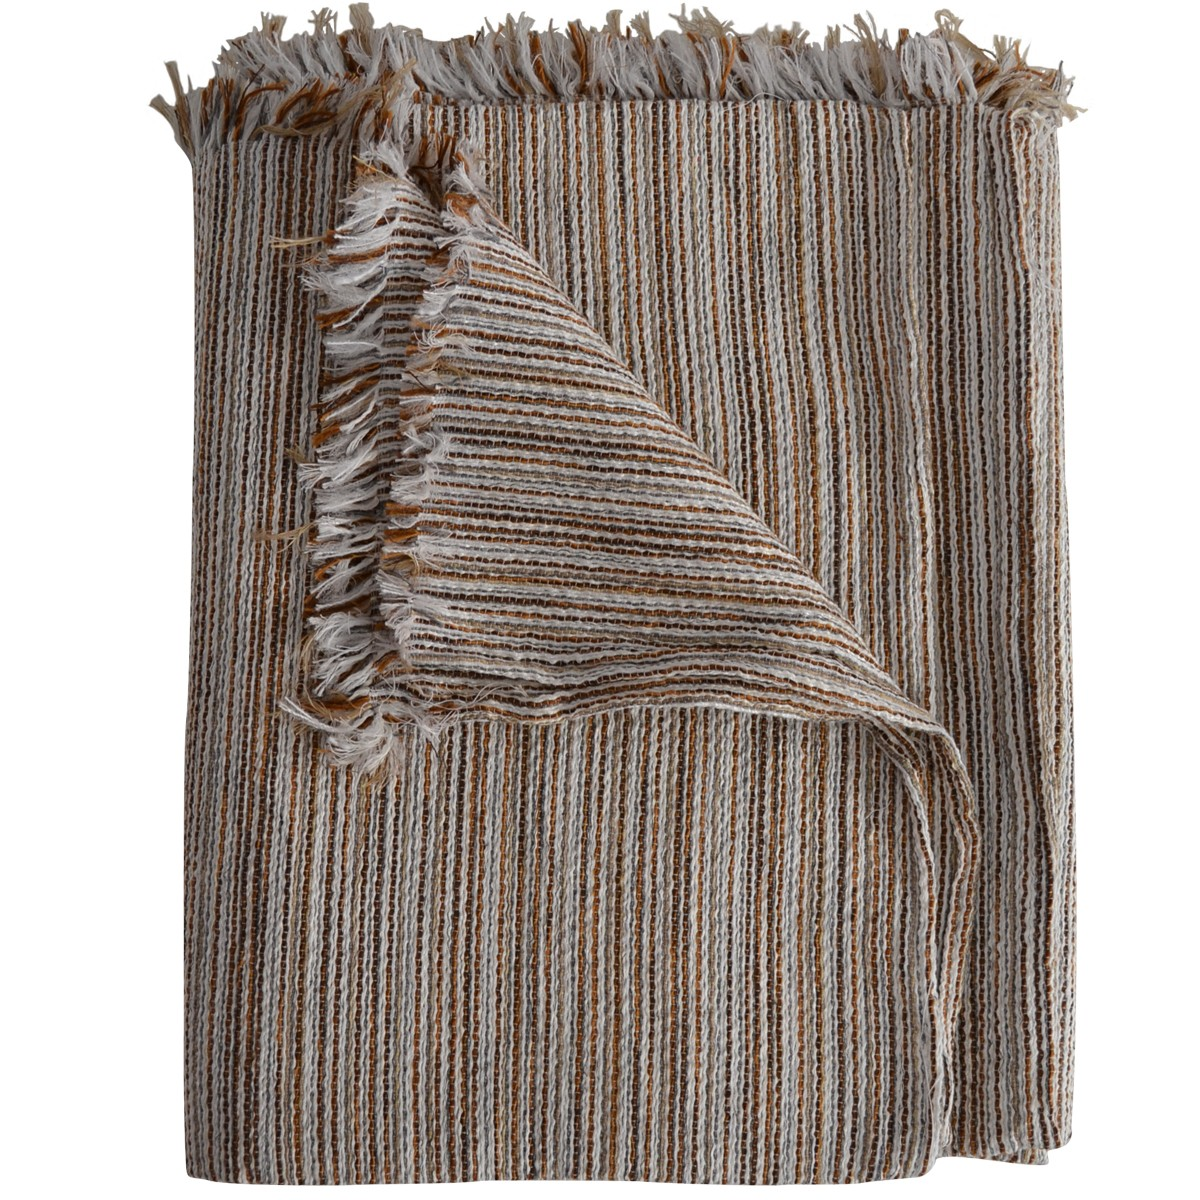 Blanket with stripes, Brown / Multi